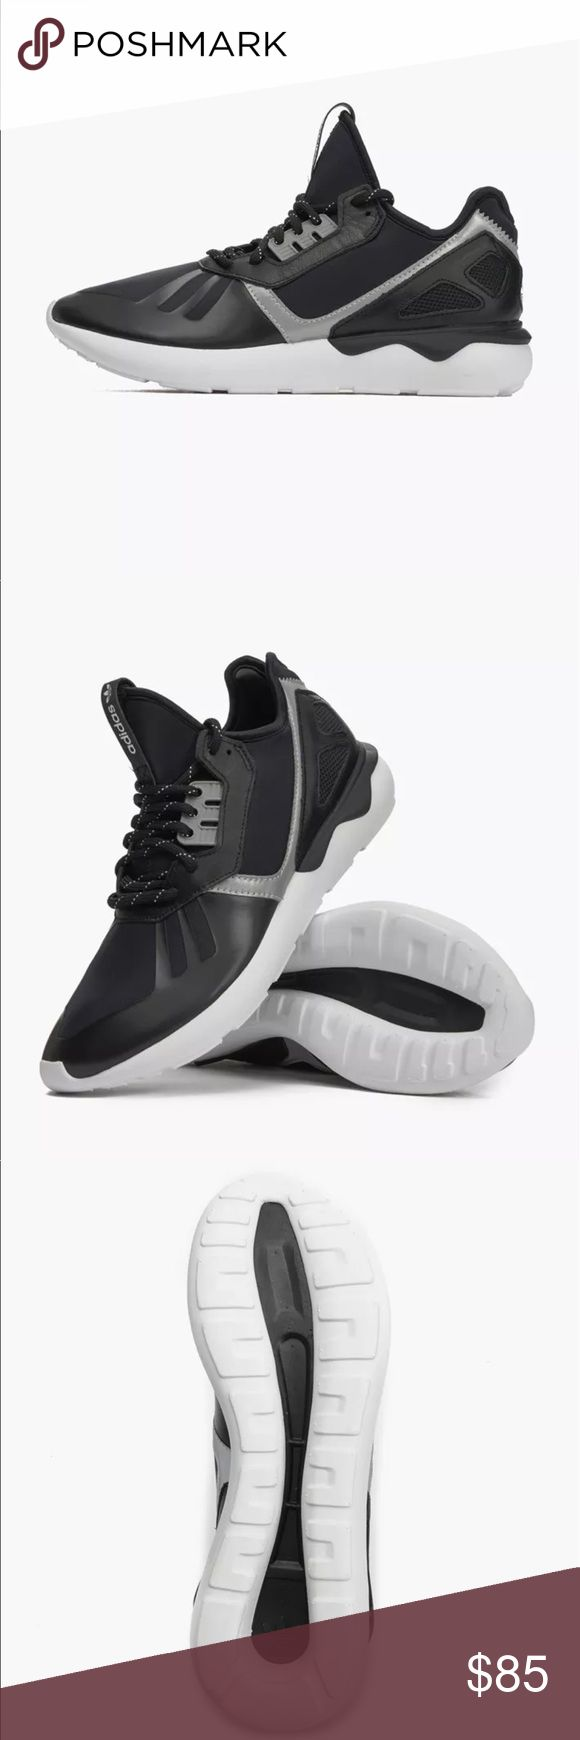 Men's Adidas Tubular Runner Core Black Shoes New in Box! Originally dropped in the mid-'90s, the adidas Tubular 2 was known for its futuristic design that actually allowed you to customize the fit, per a pump that came with the shoes. Now the Three Stripes is using that and their high-fashion Y-3 Qasa as inspiration for the Tubular Runner. A sleek one-piece neoprene upper with leather overlays and laser-cut heel cage means you can dress these up or down, while the distinct oversized outsole…